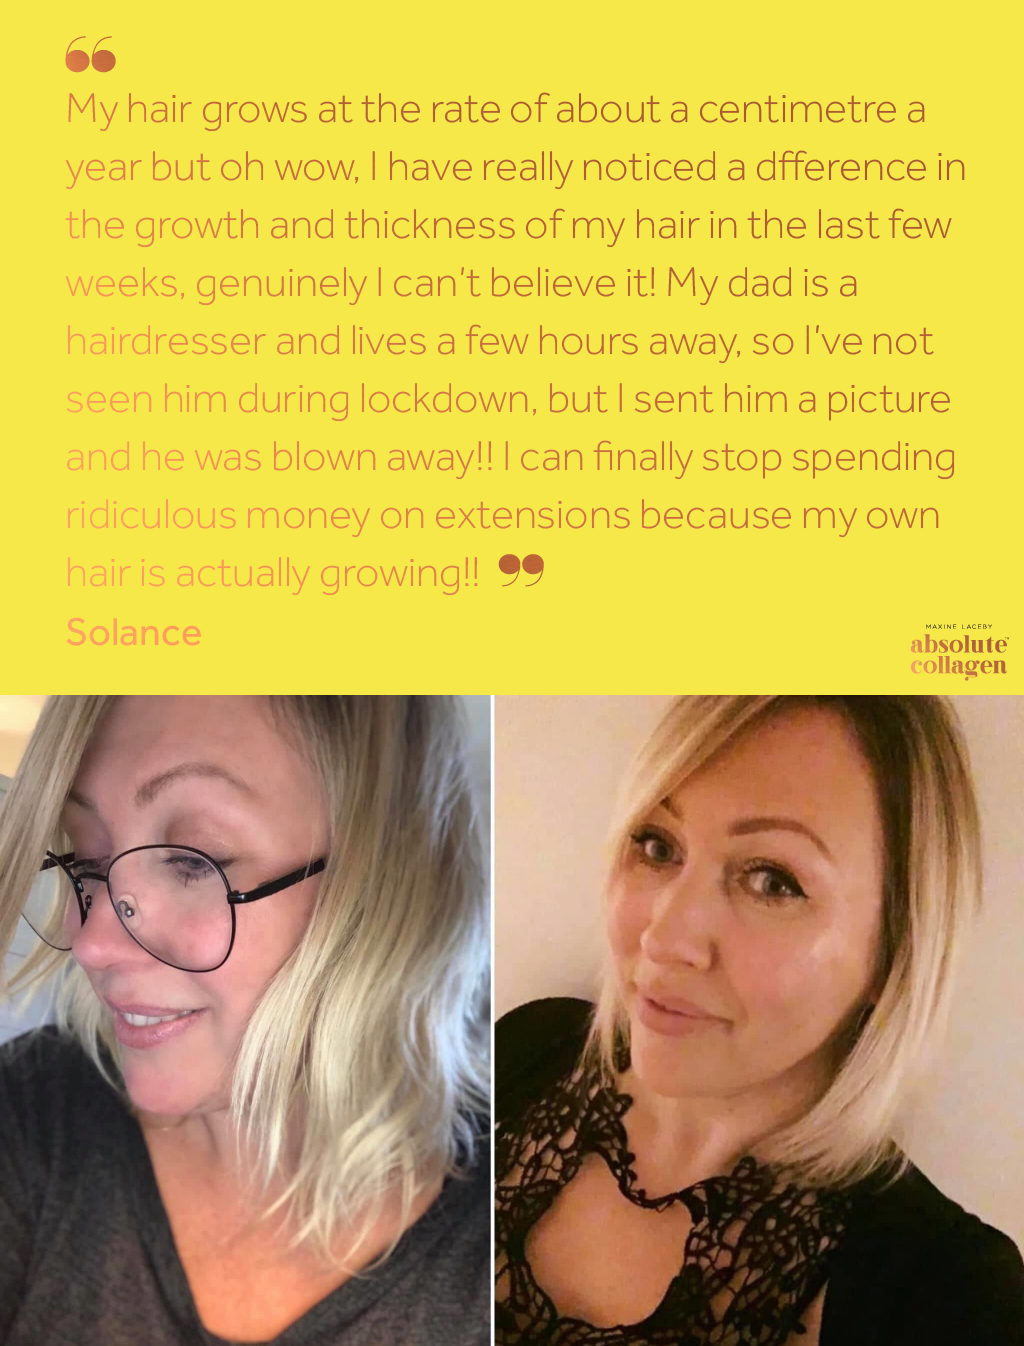 Before and after photos of a white woman with blonde hair showing increased hair growth from taking Absolute Collagen, below text on a yellow background describing how Absolute Collagen has helped her